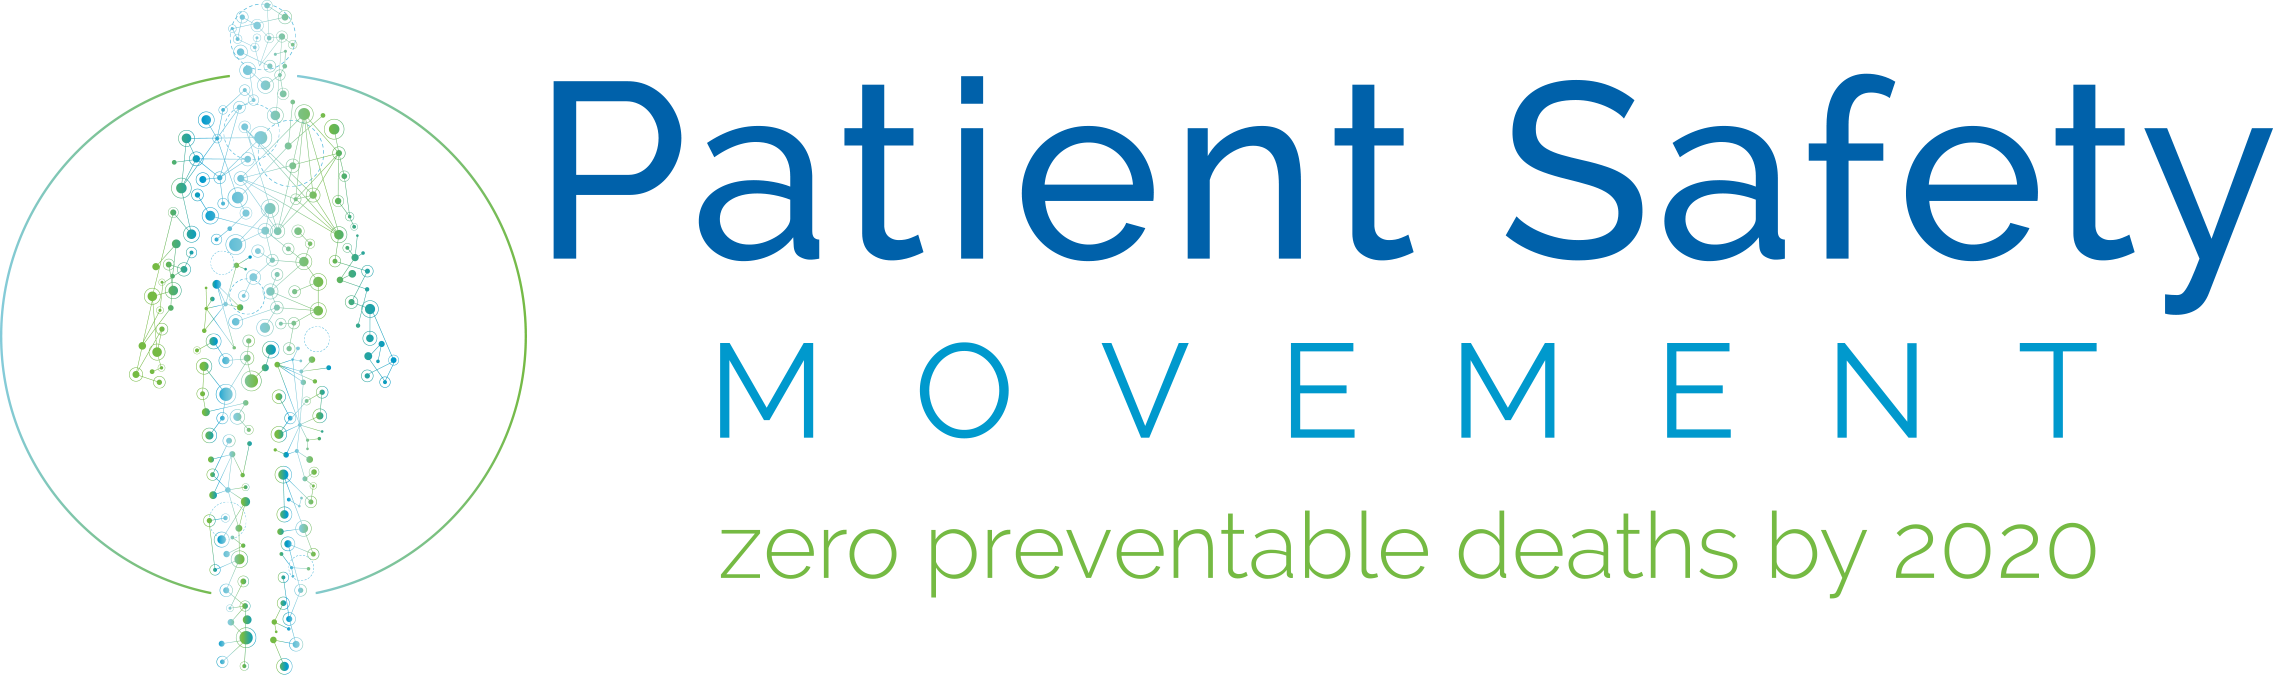 Patient_Safety_Movement_logo_tag.png